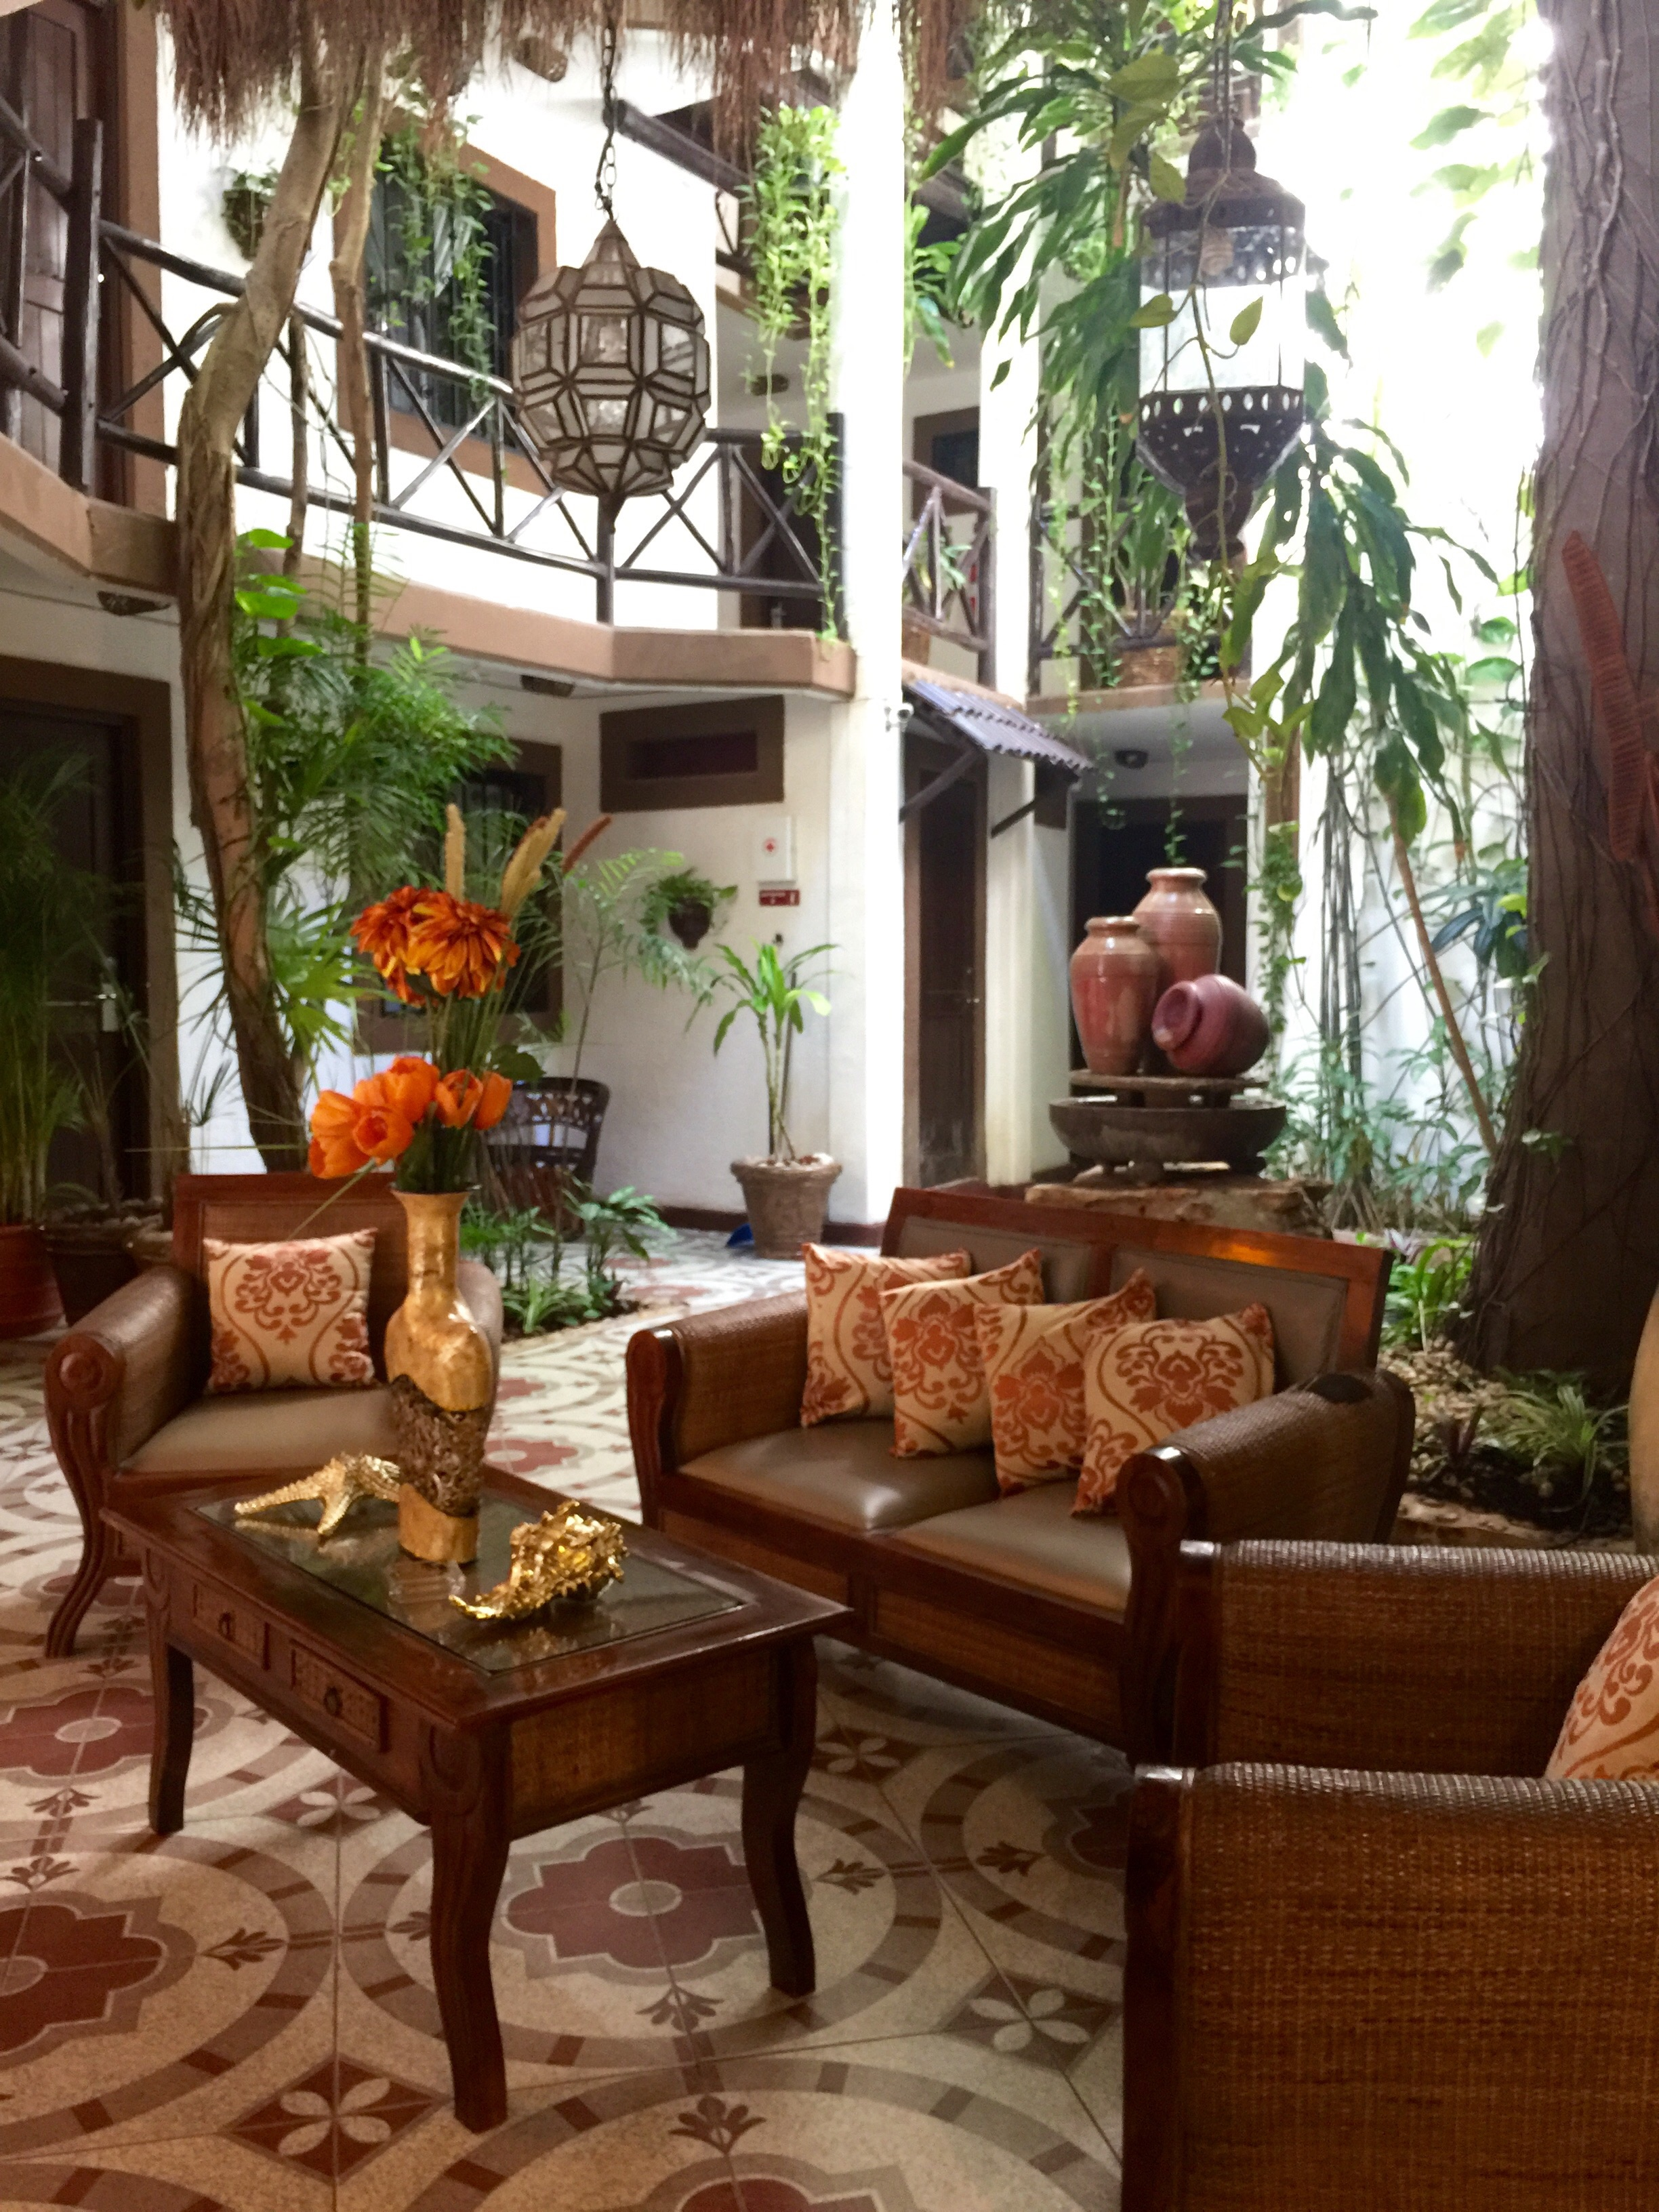 Hotel for the week...Mariposa Posada Boutique